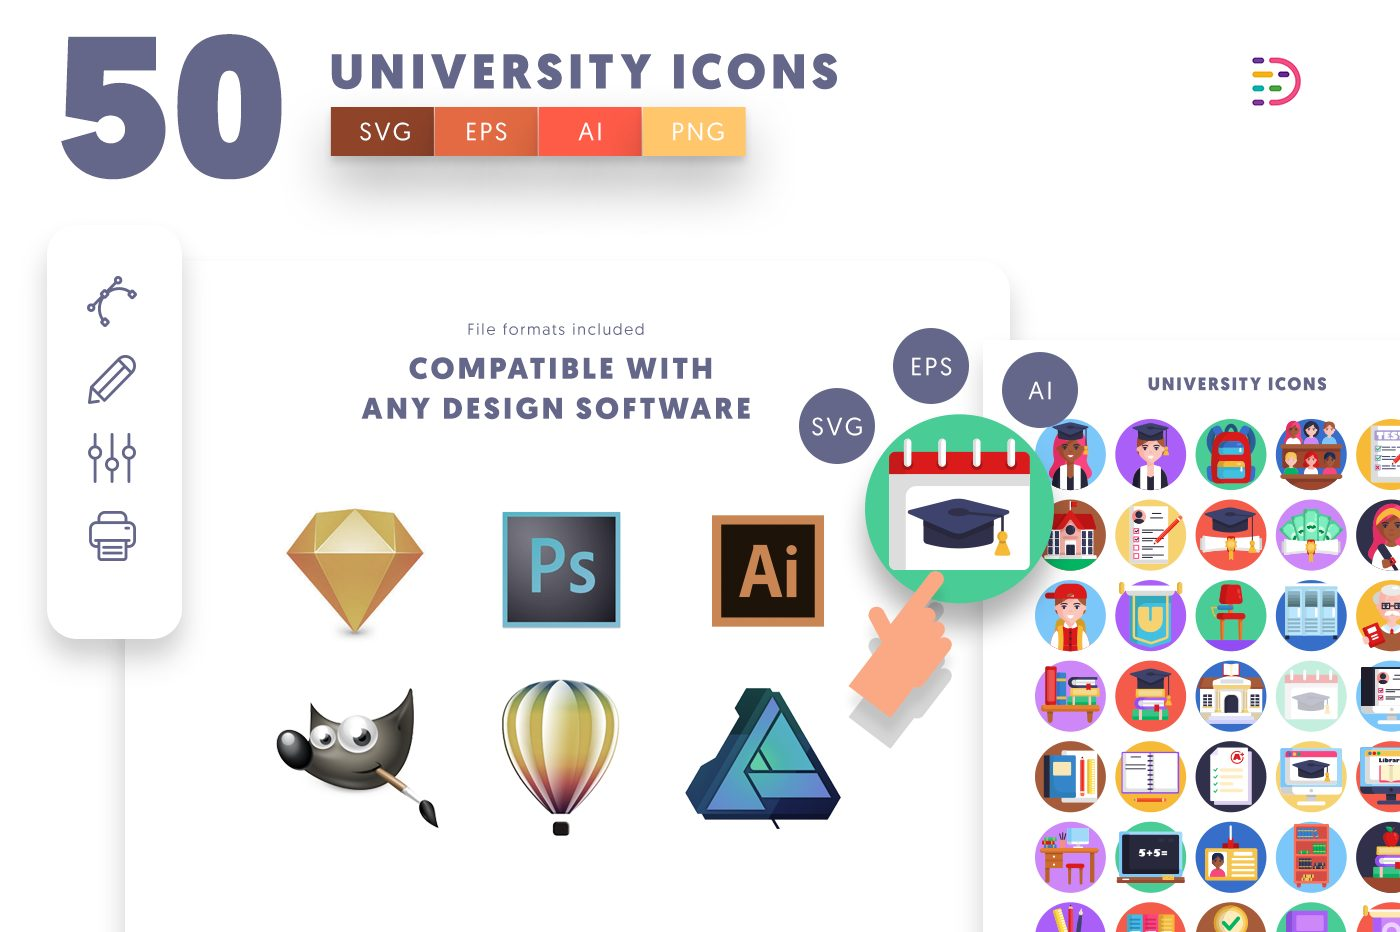 full vector 50 University Icons EPS, SVG, PNG